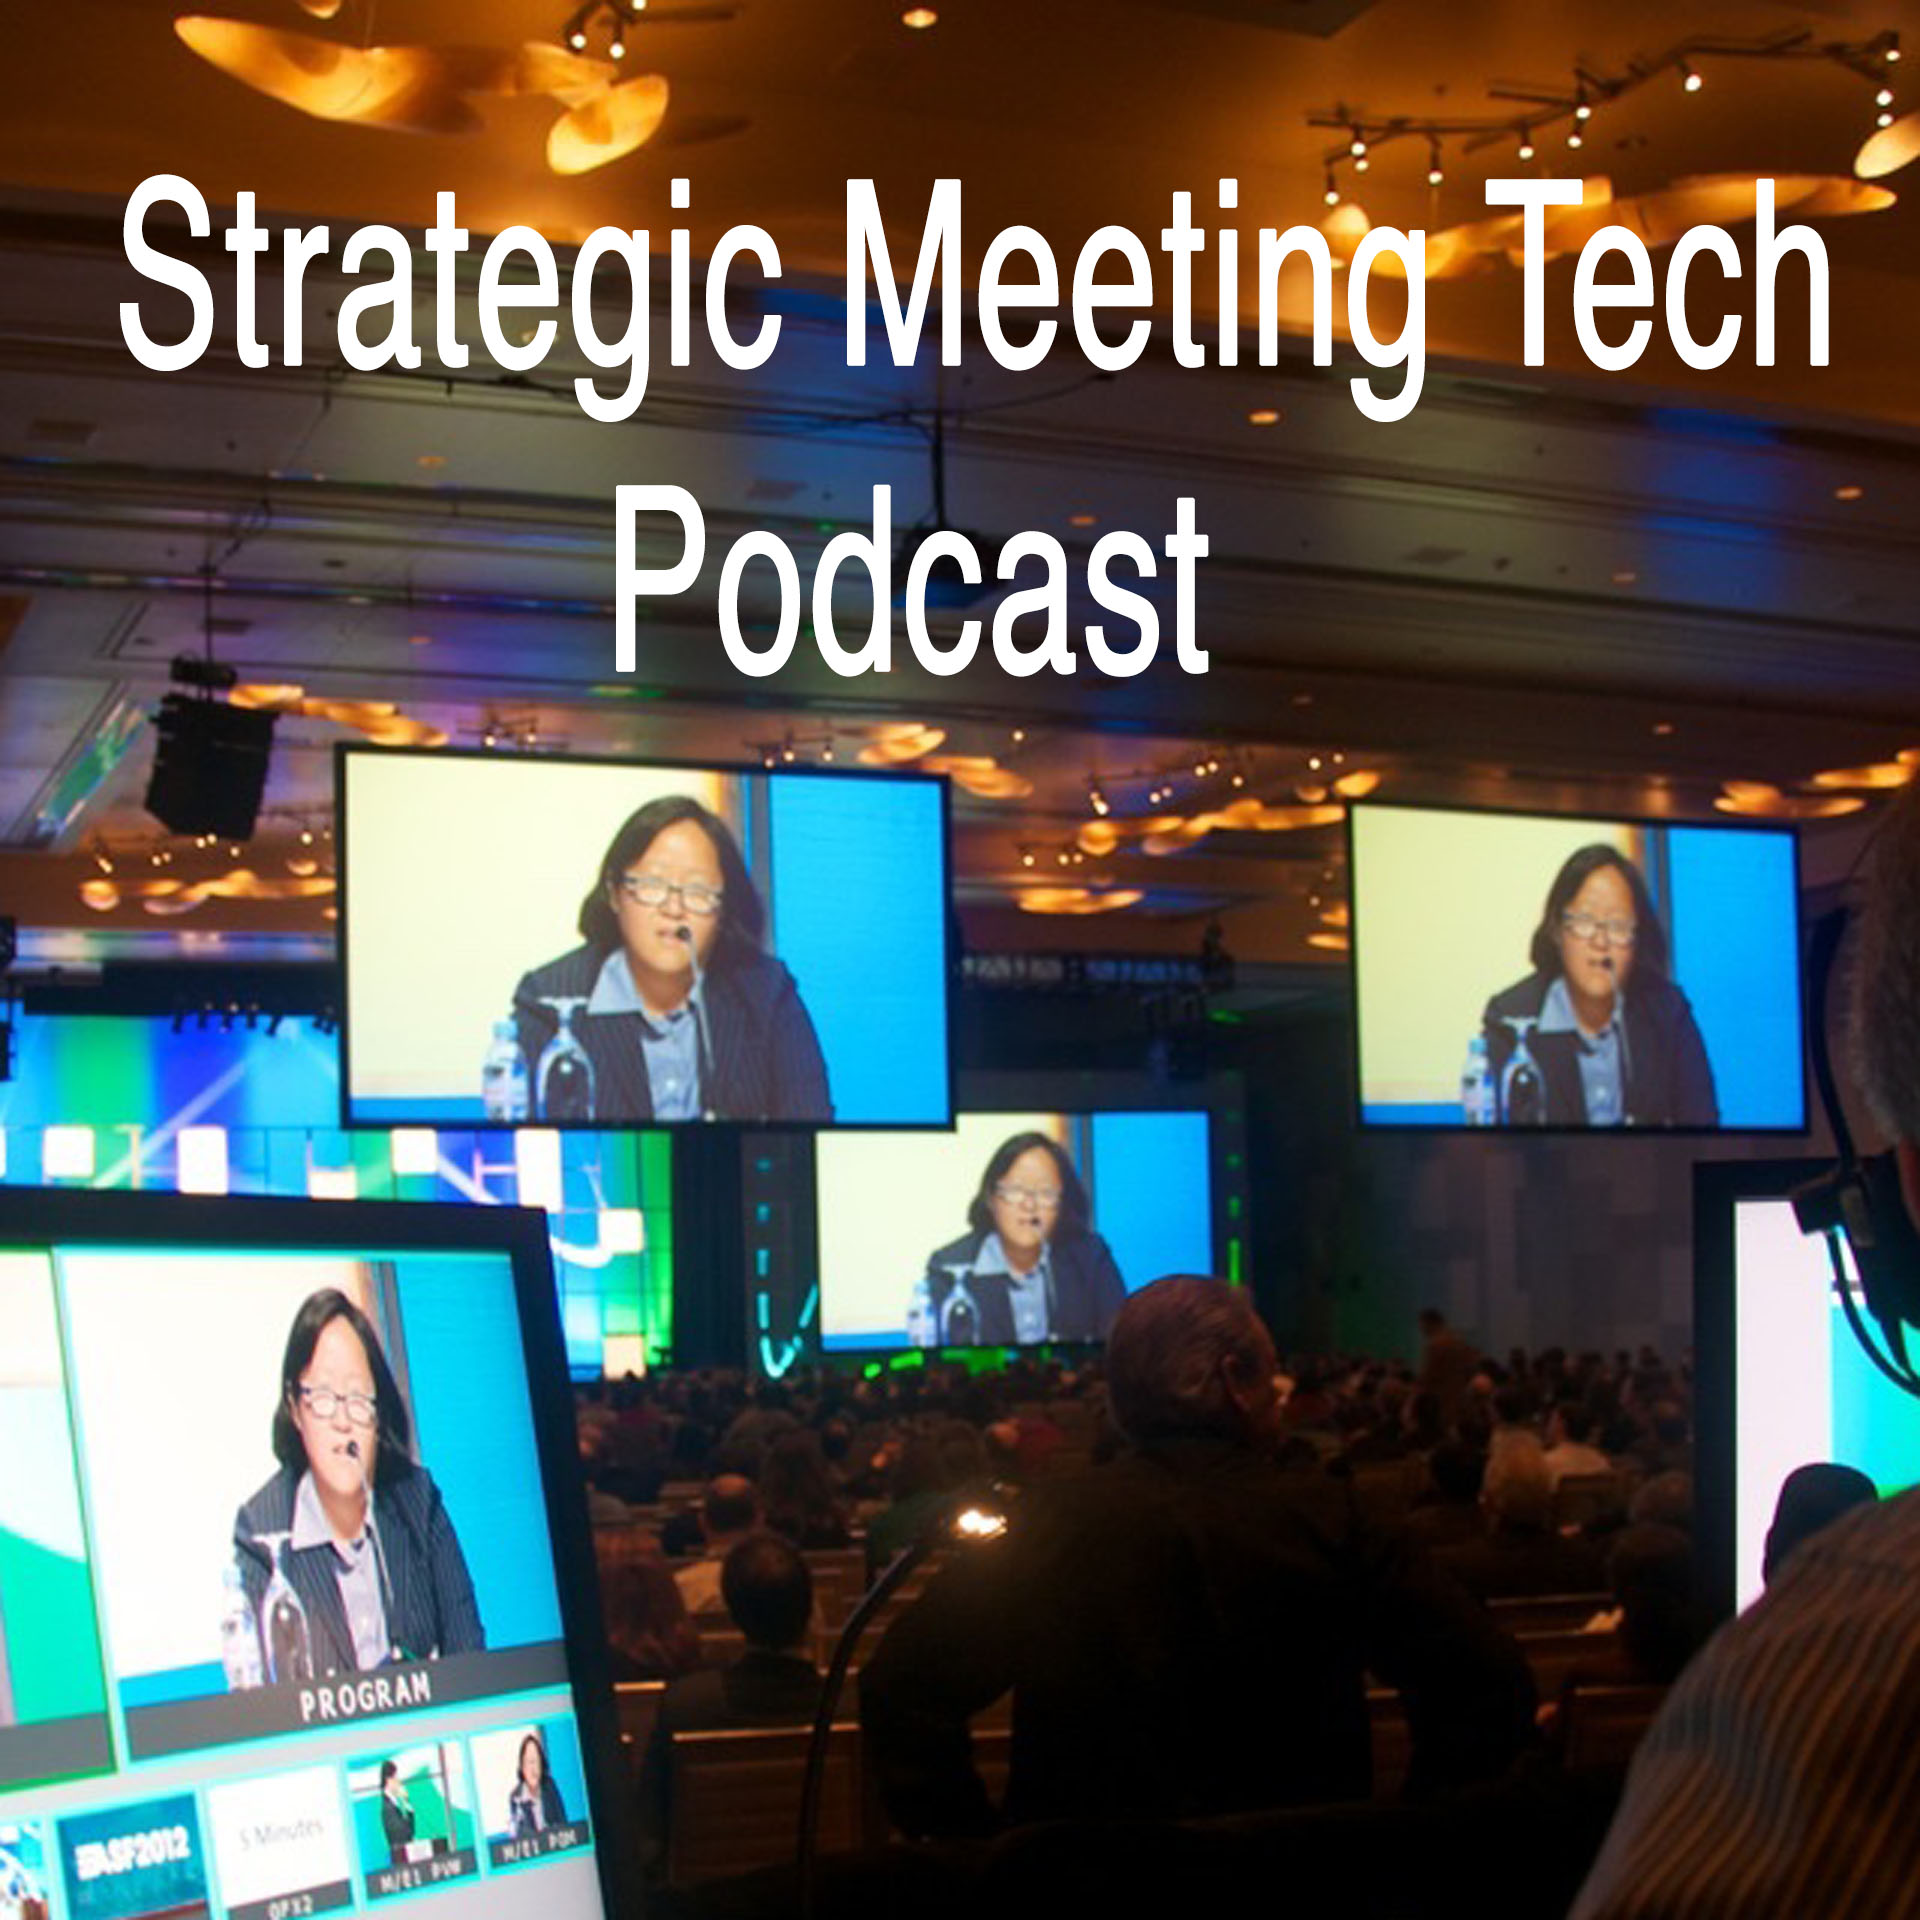 Strategic Meeting Tech Podcast